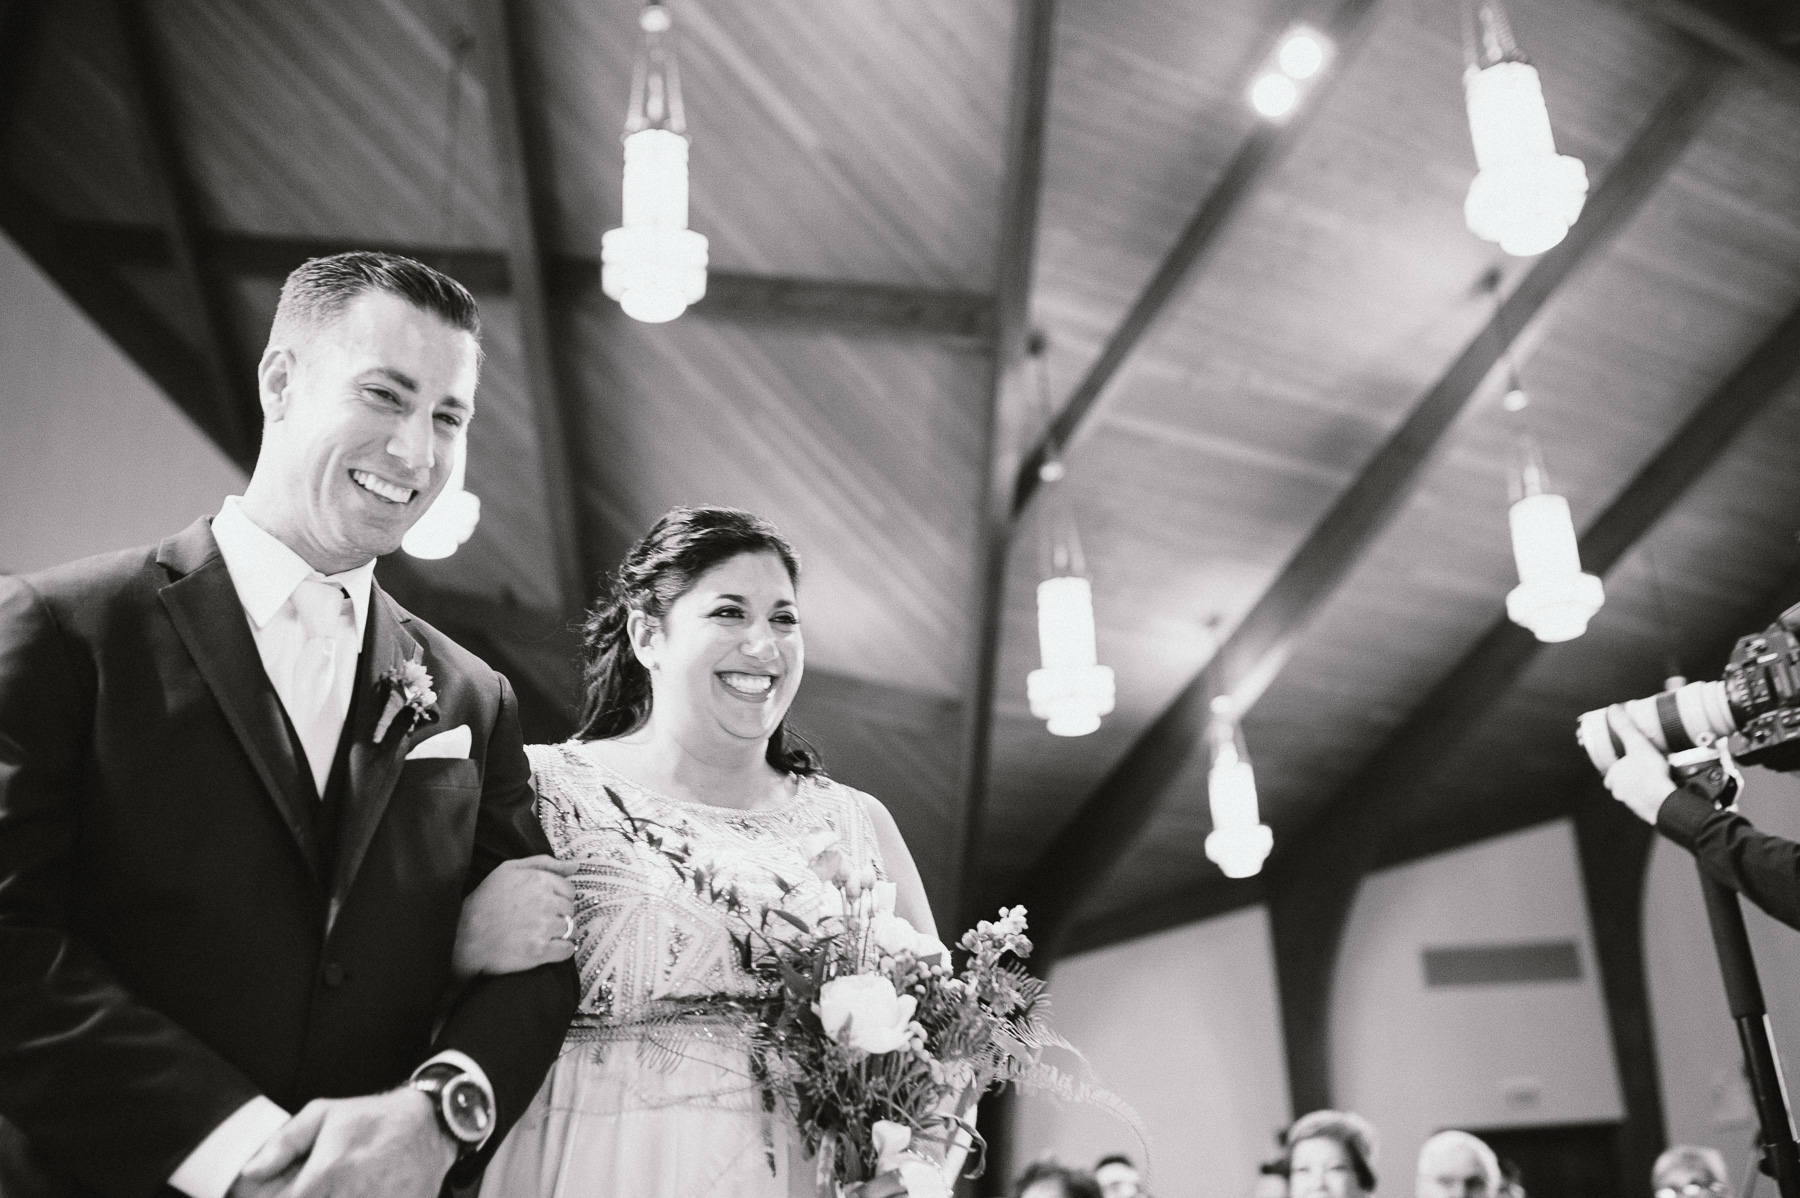 The_Carriage_House_at_Rockwood_Park_wedding_photo057.jpg